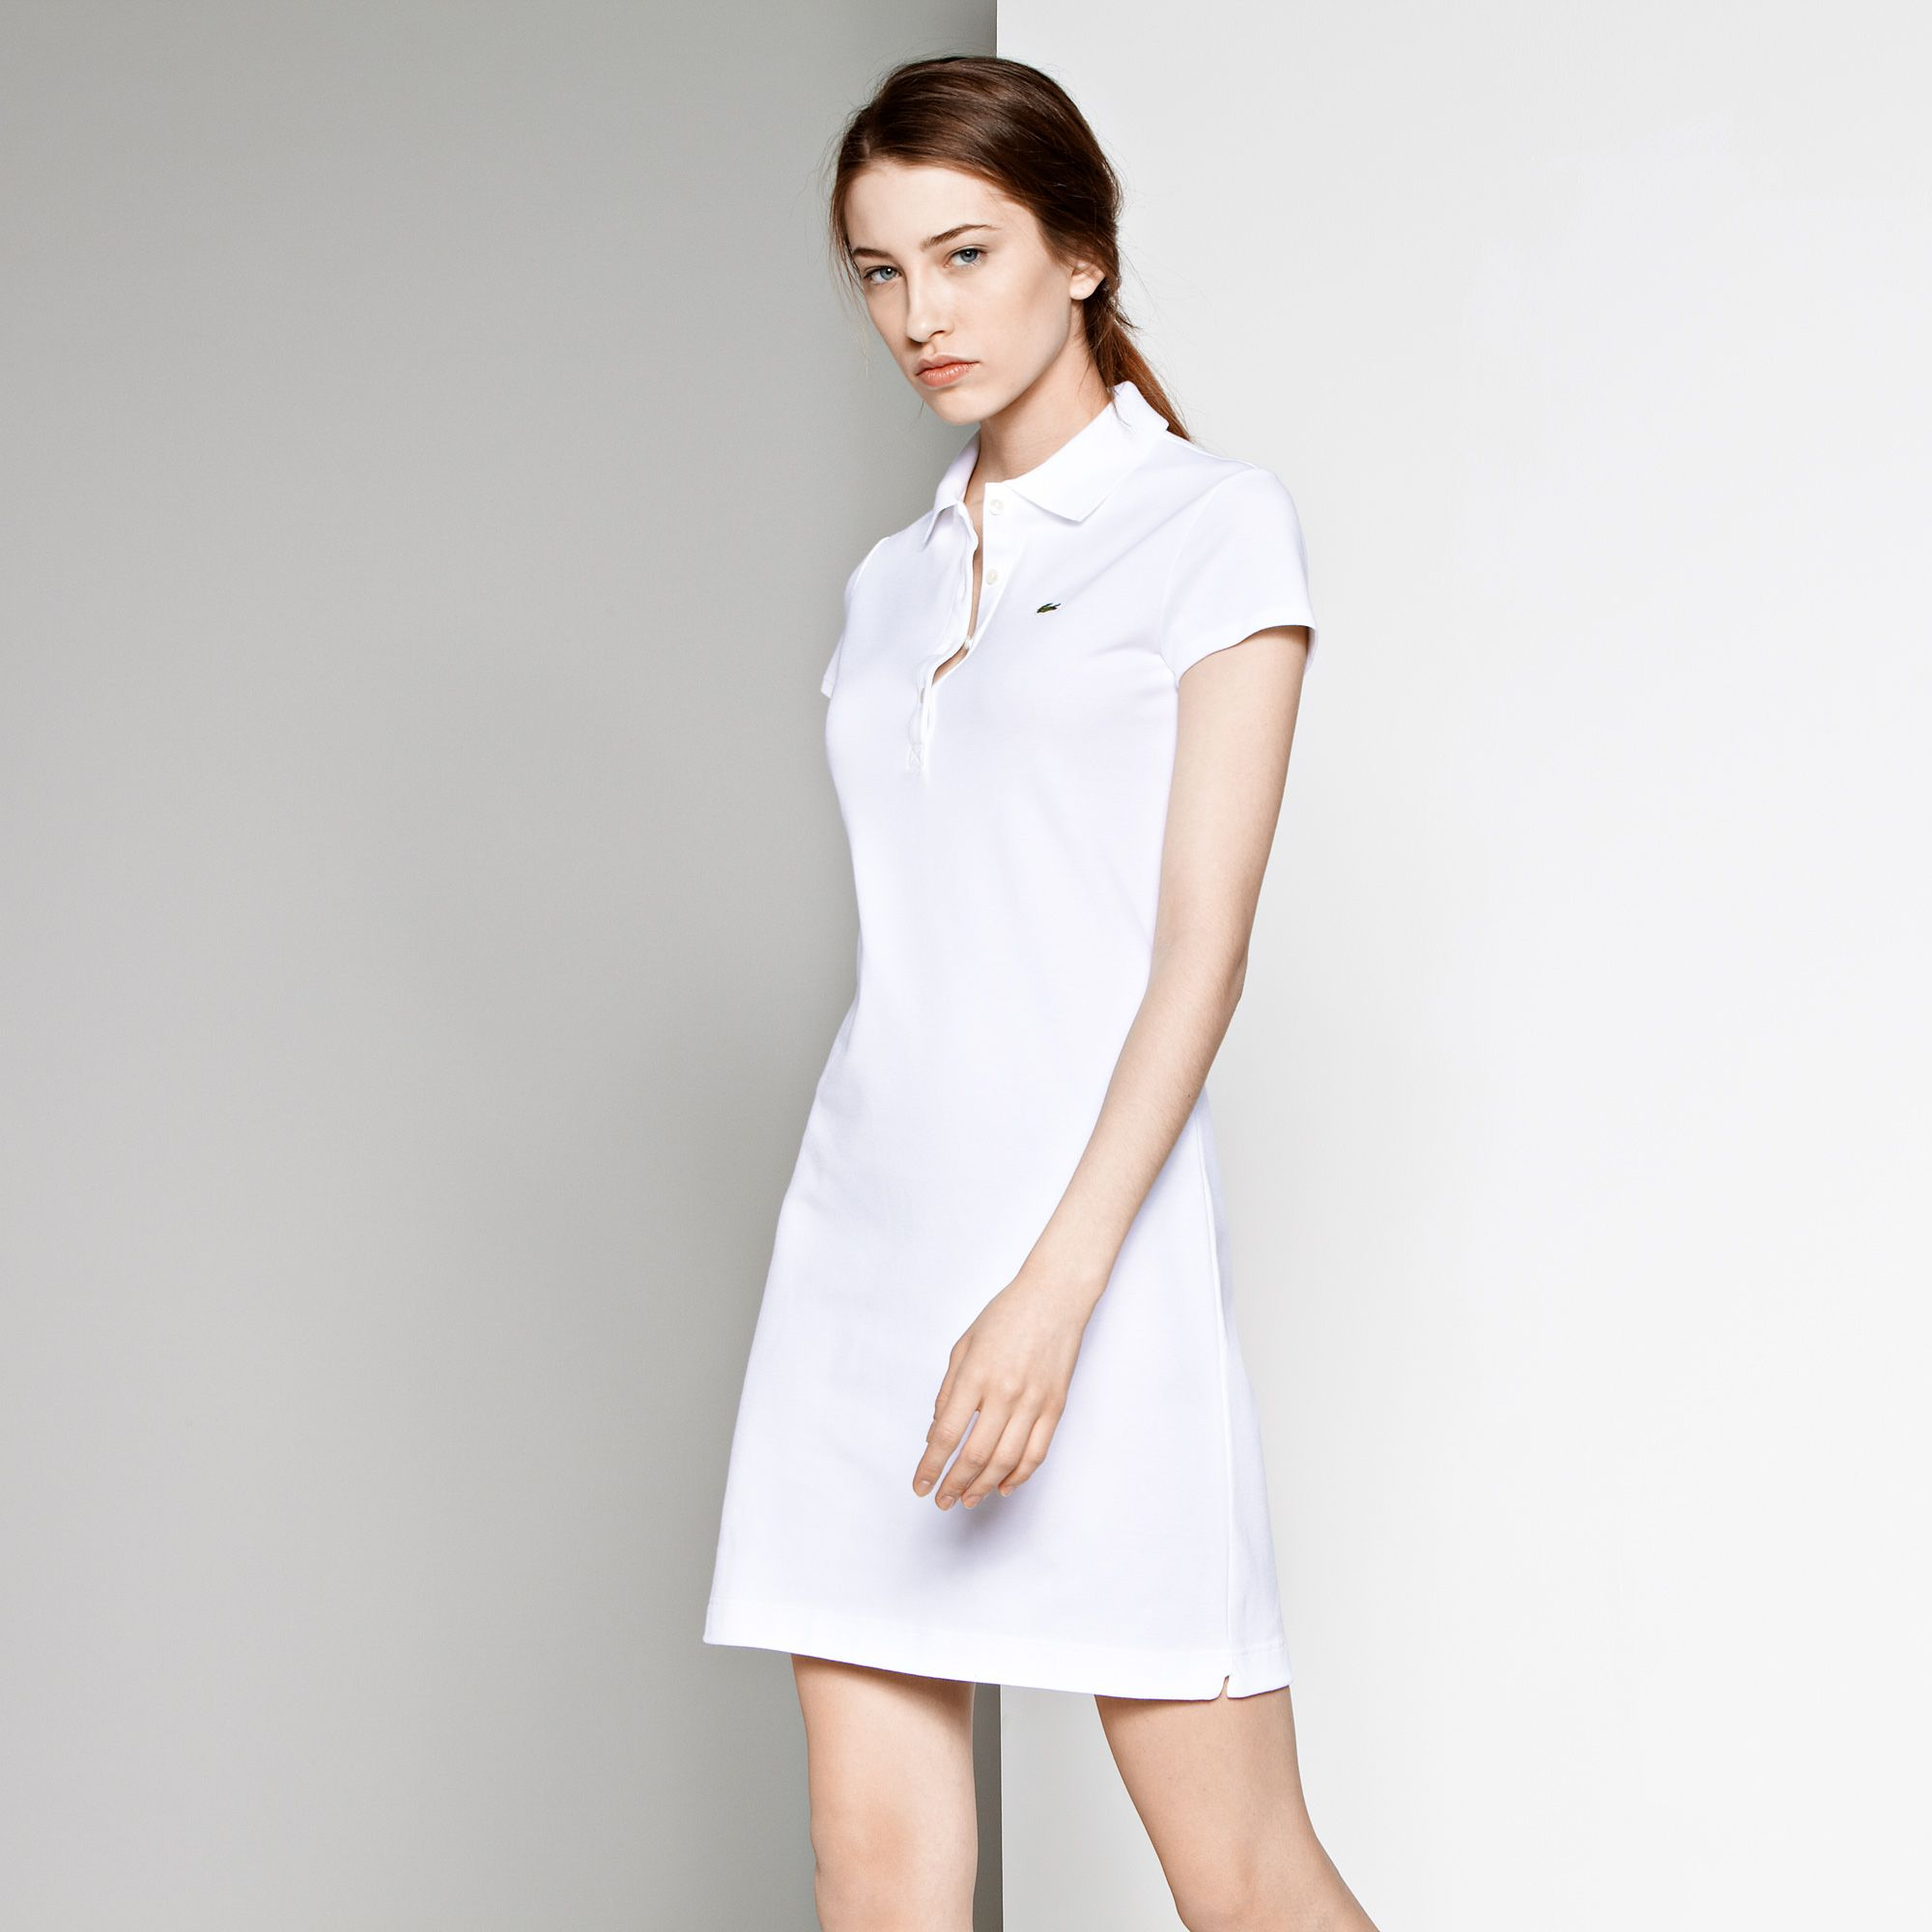 Lacoste polo dress white collar